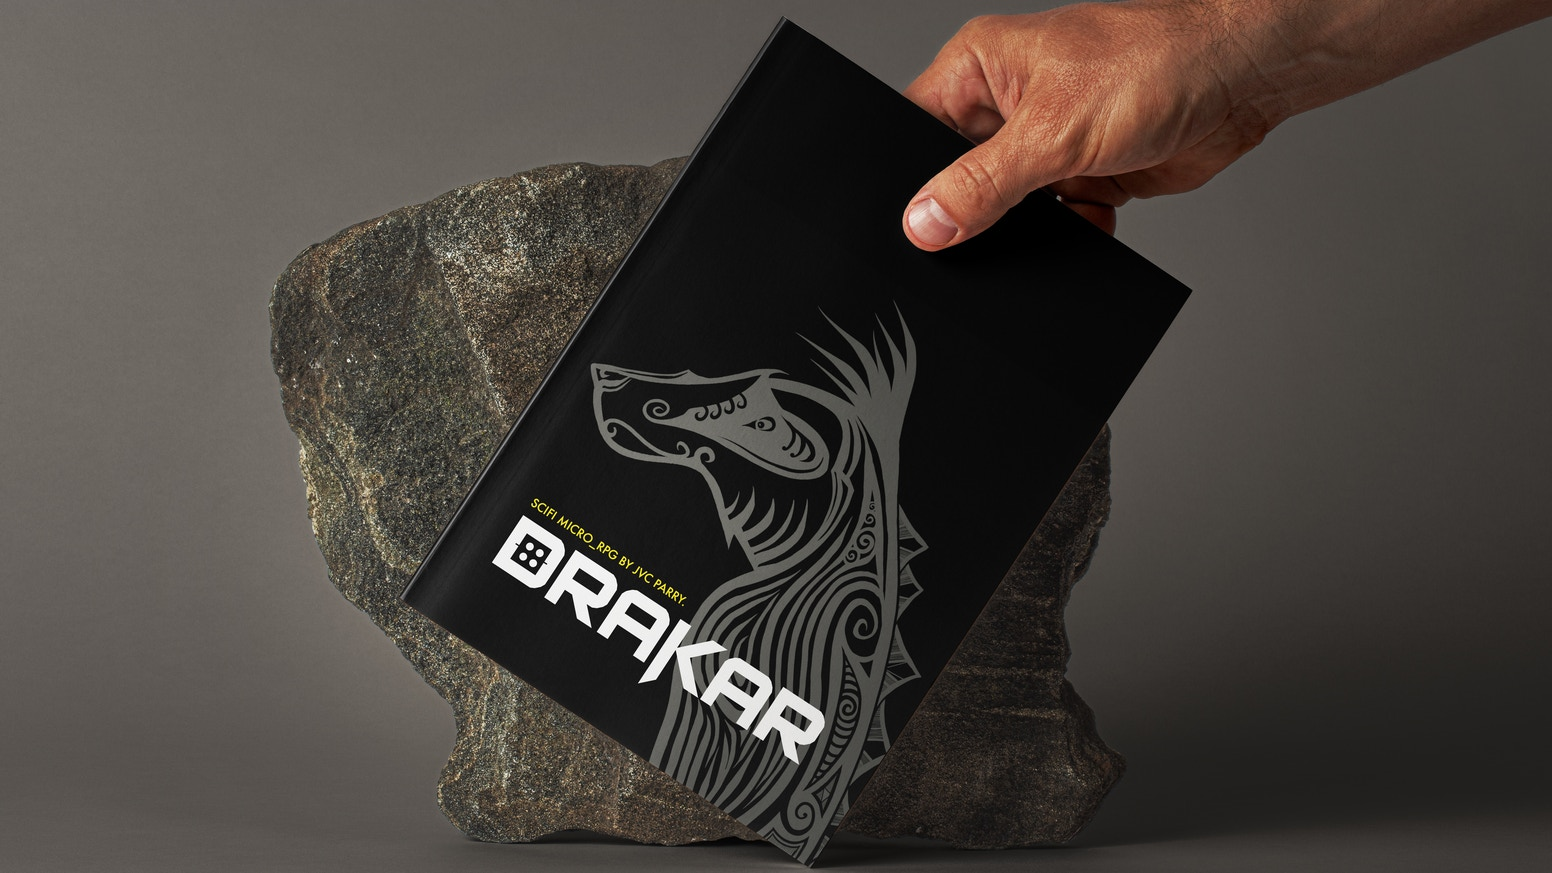 Drakar is a sci-fi indie microRPG that uses dominoes and a d6 to determine the fate of a spacecraft in search of a new homeworld.